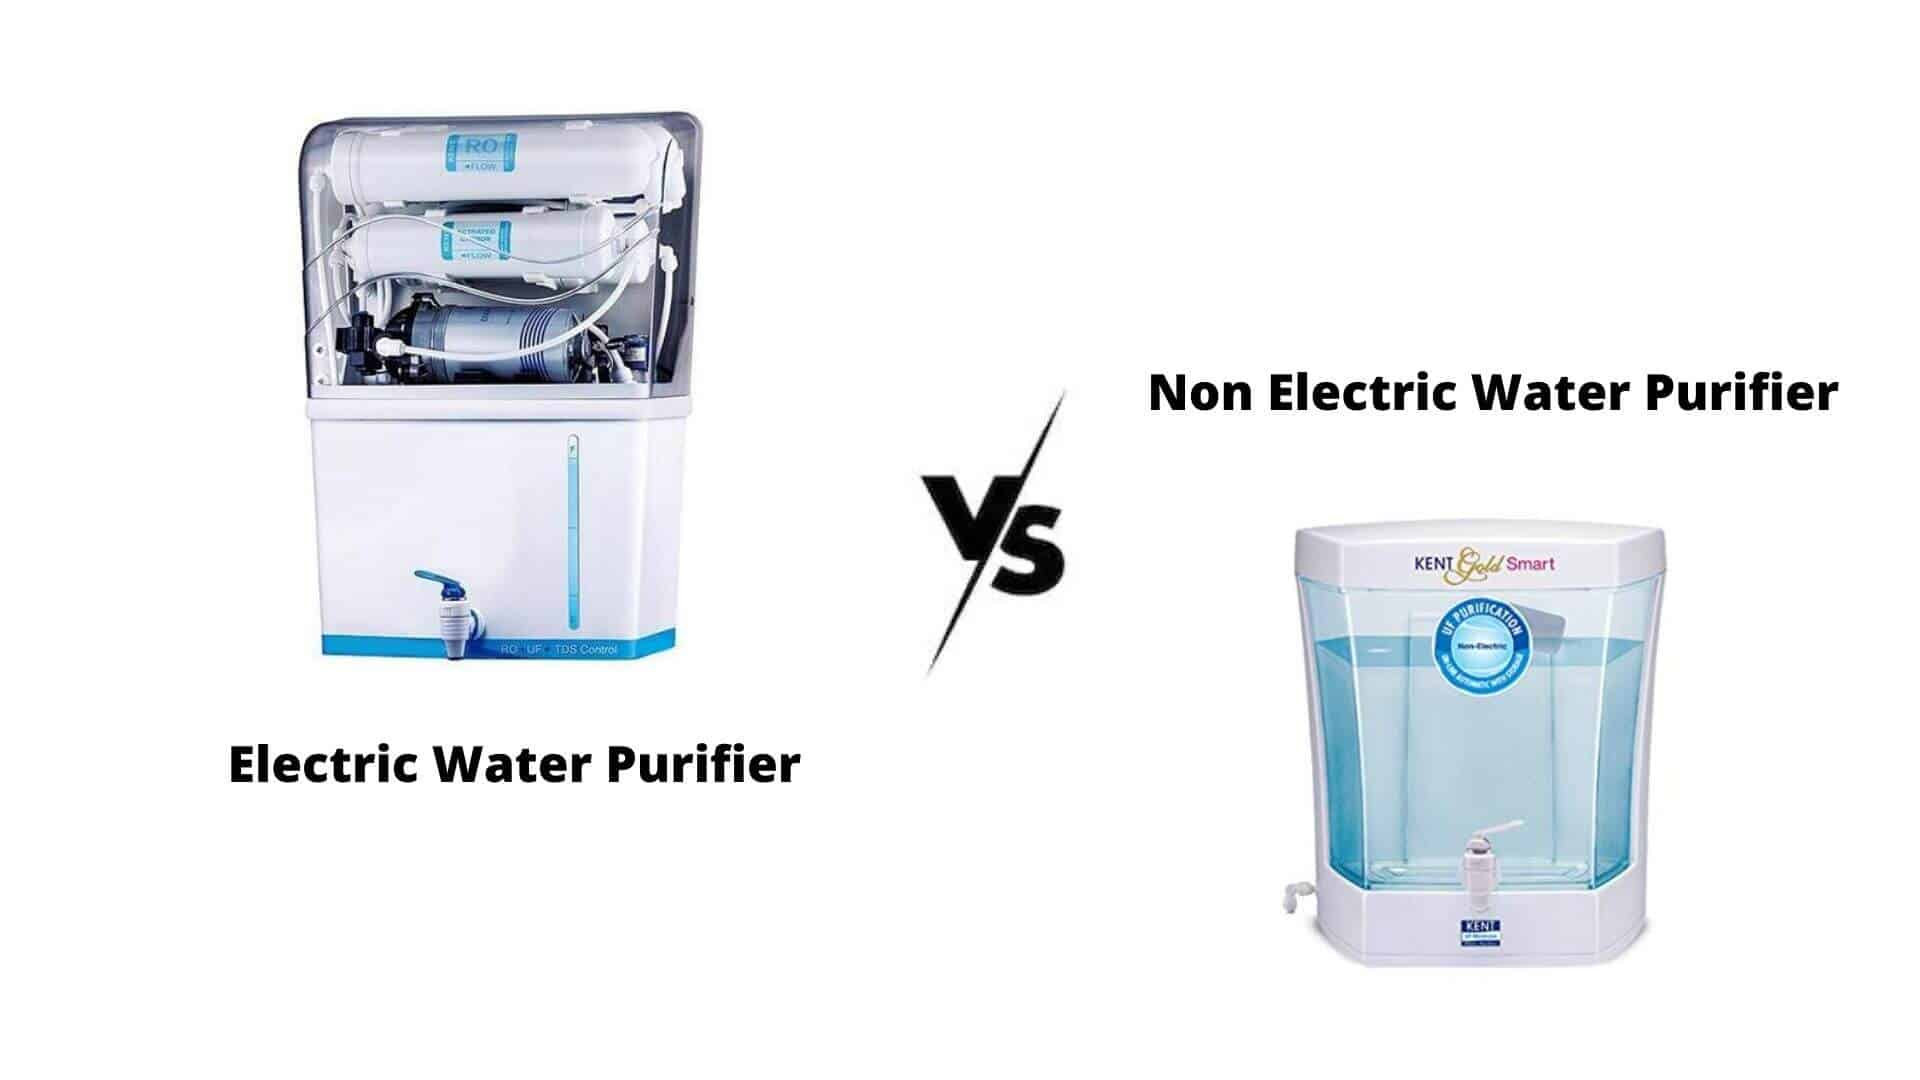 5 Differences Between Electric and Non Electric Water Purifier